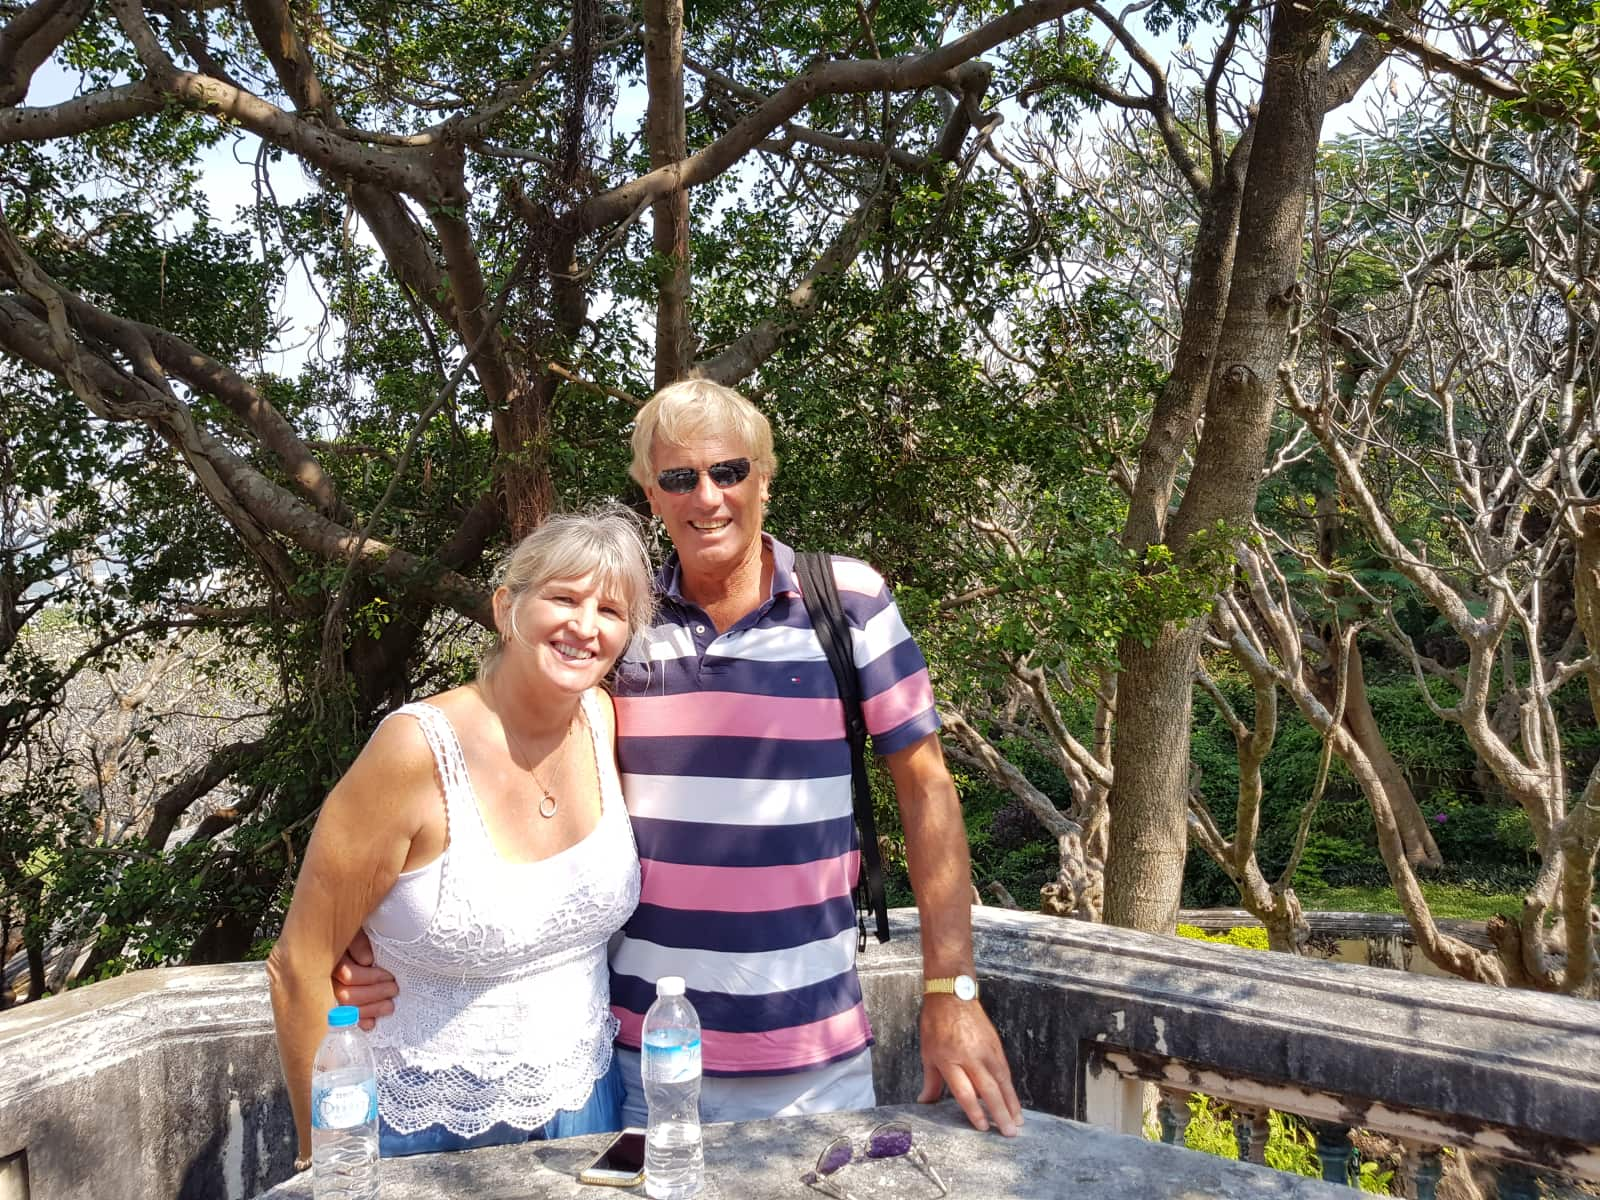 John & Evelyn from Hua Hin, Thailand